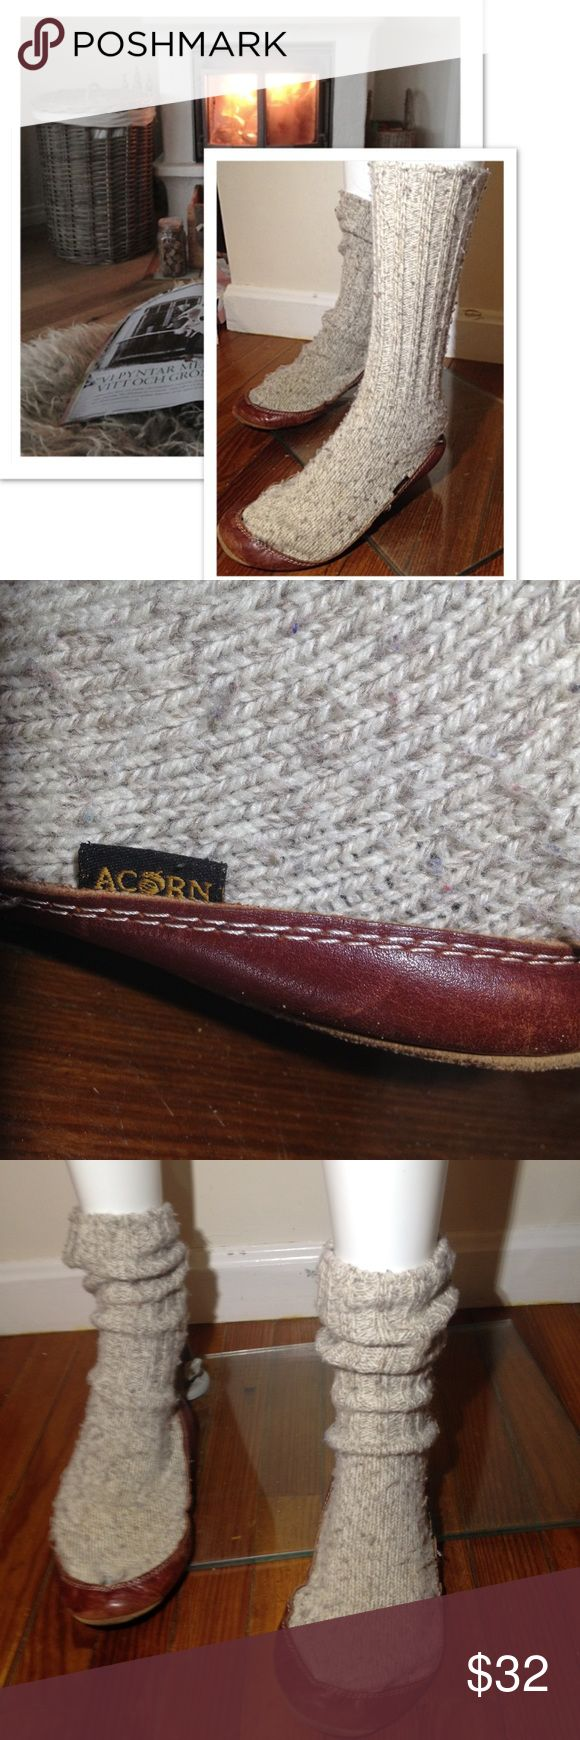 """BUY 1 GET 1 FREE sale 5-7 ACORN Slippers ACORN 14"""" Long Wool Slippers Mohagany Base Trim Oatmeal color WOMENS Size XXS 5-7 Christmas gift idea stocking stuffers cover photo is to show style Acorn Shoes"""